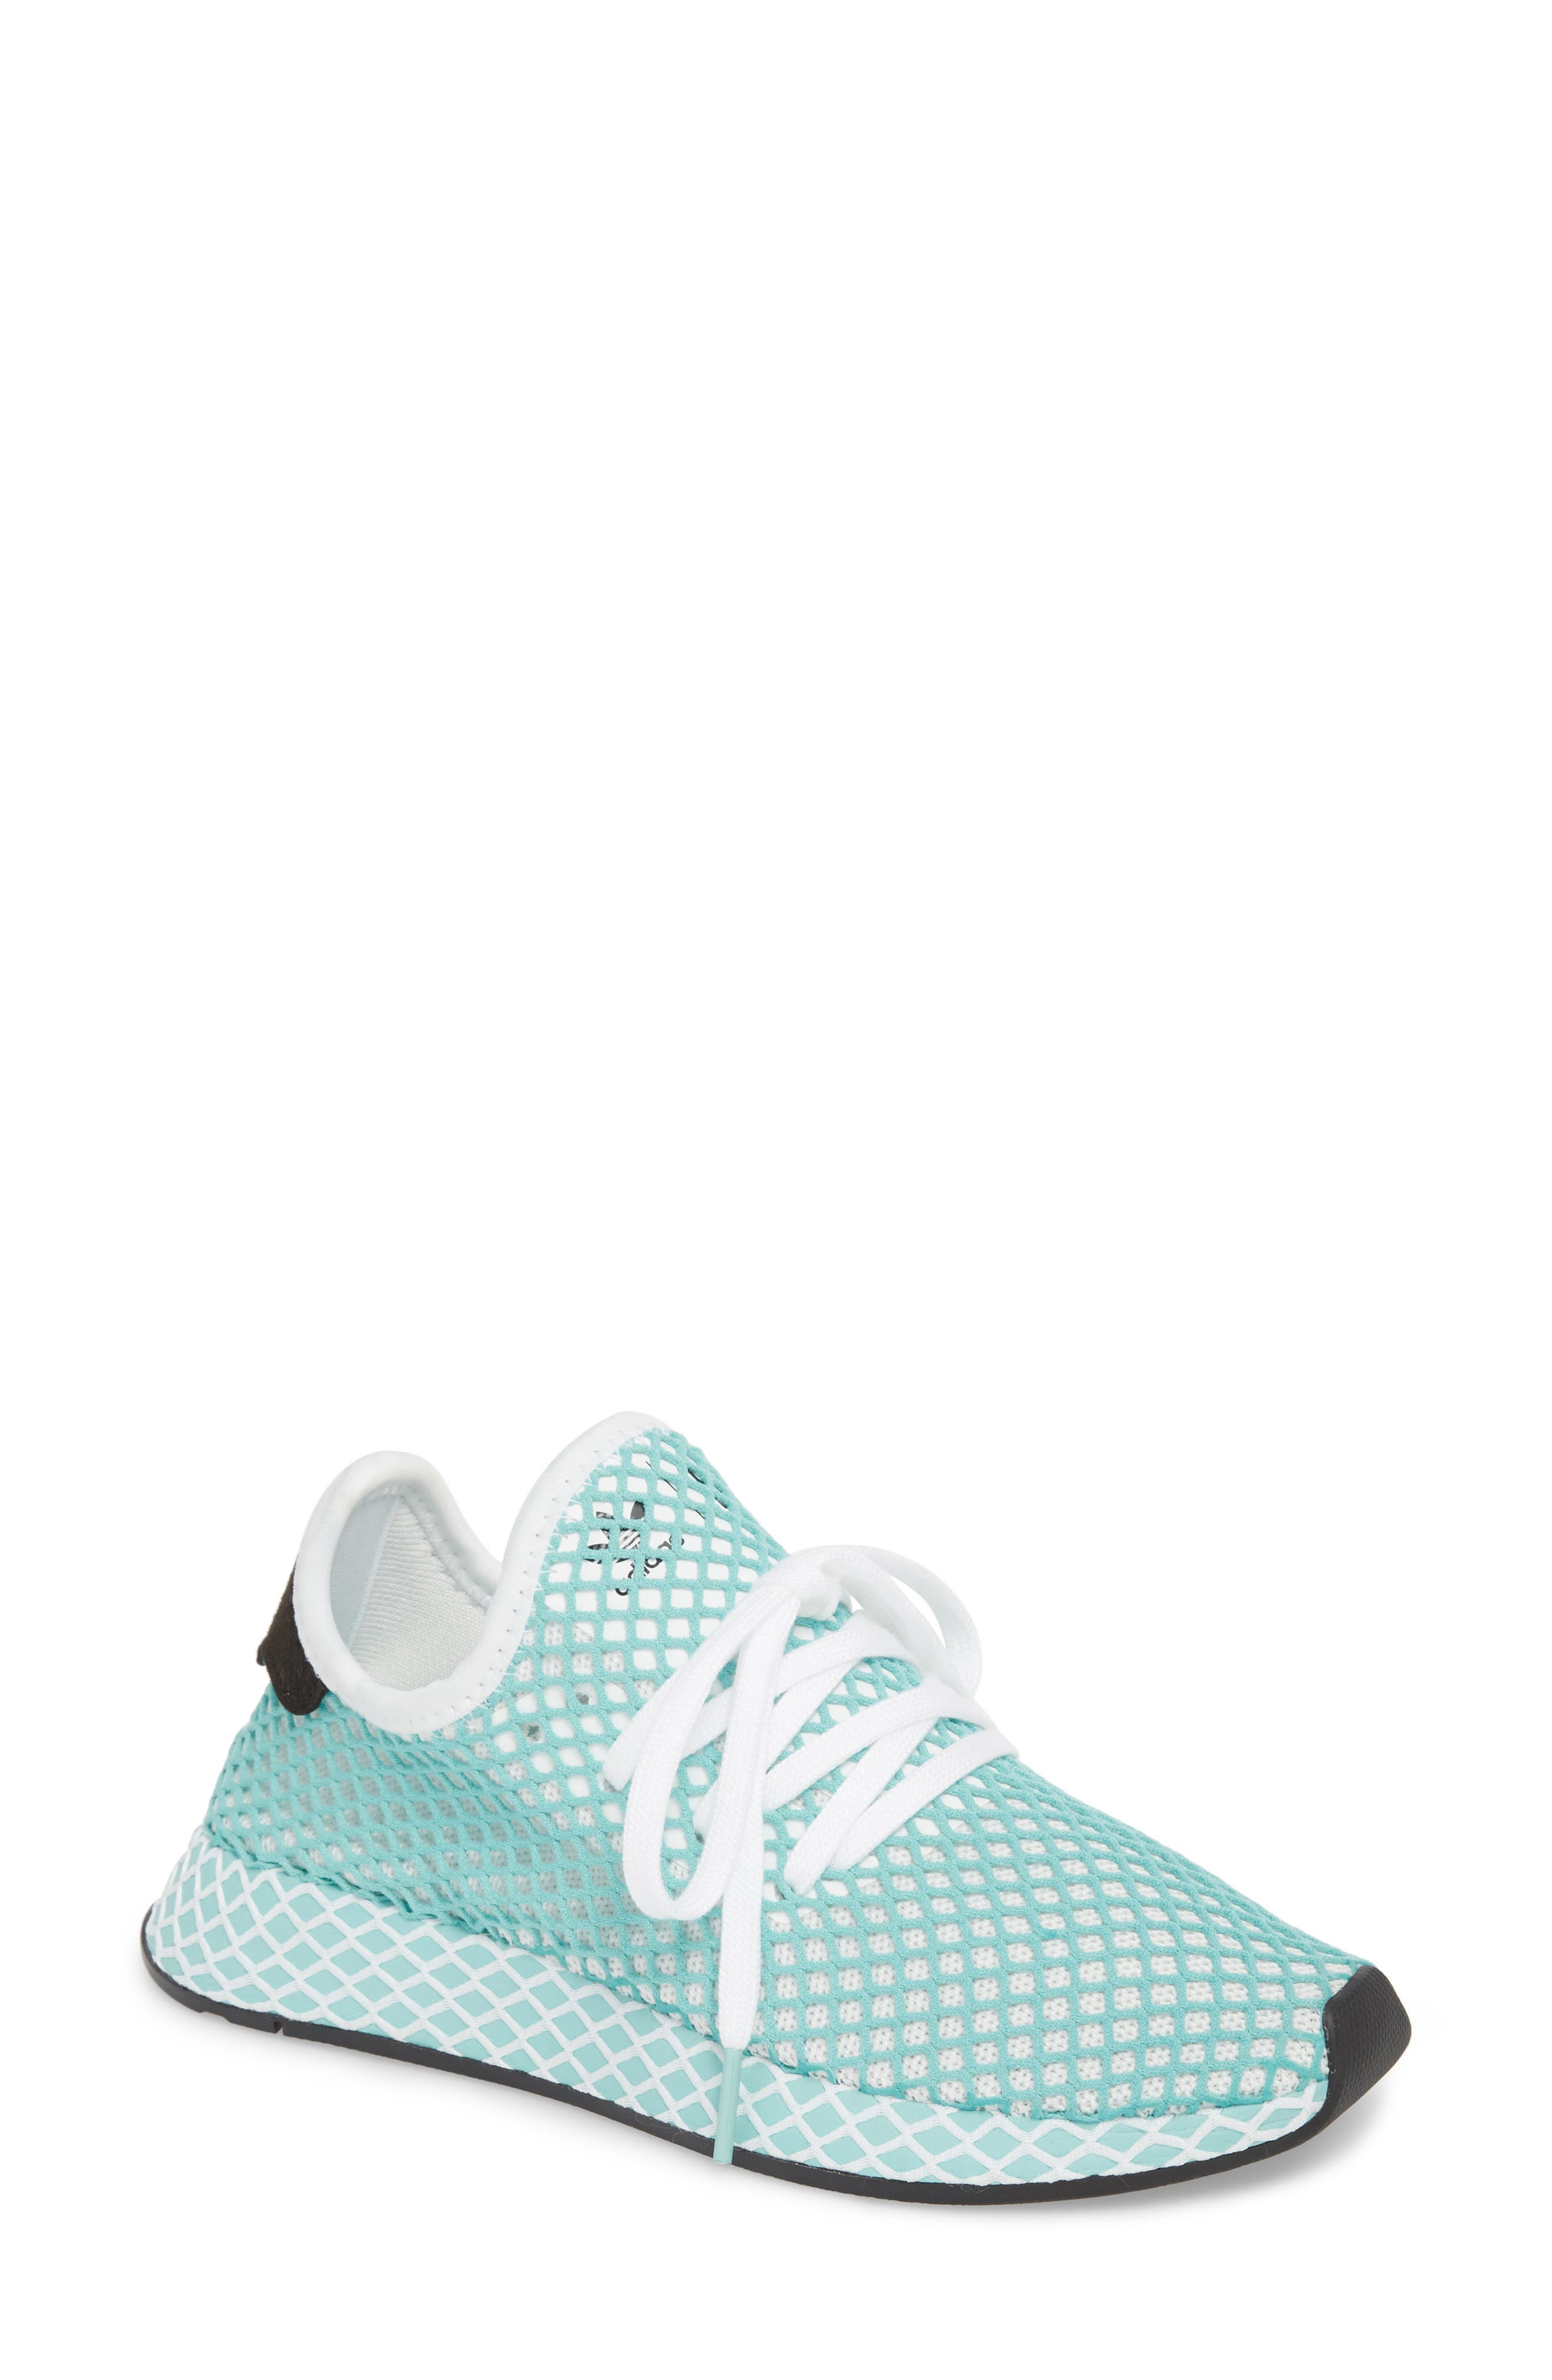 Deerupt x Parley Runner Sneaker,                         Main,                         color, White/ White/ Blue Spirit